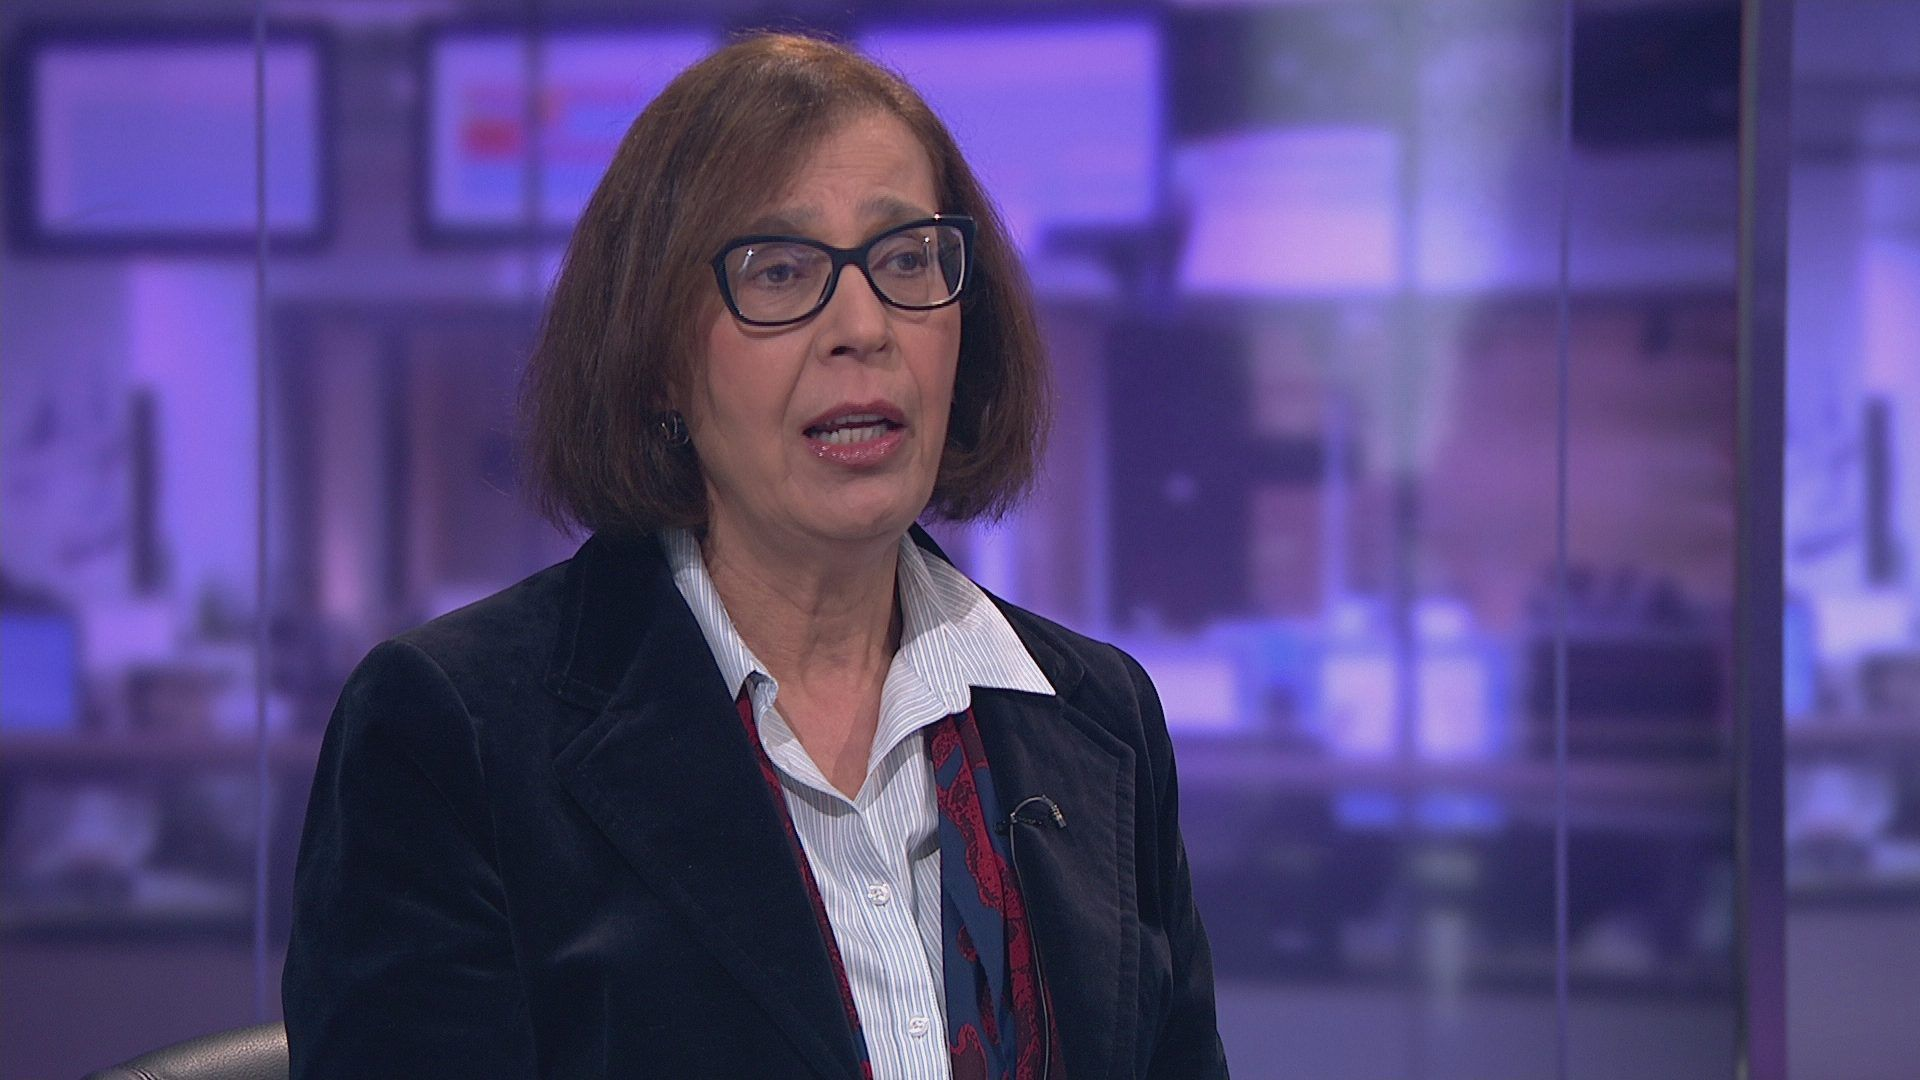 Palestinian analyst Nadia Hijab: 'Gaza is a cage that is worse than a British prison.' https://t.co/xp2Y6KmZyL https://t.co/A8ULSf4bCj